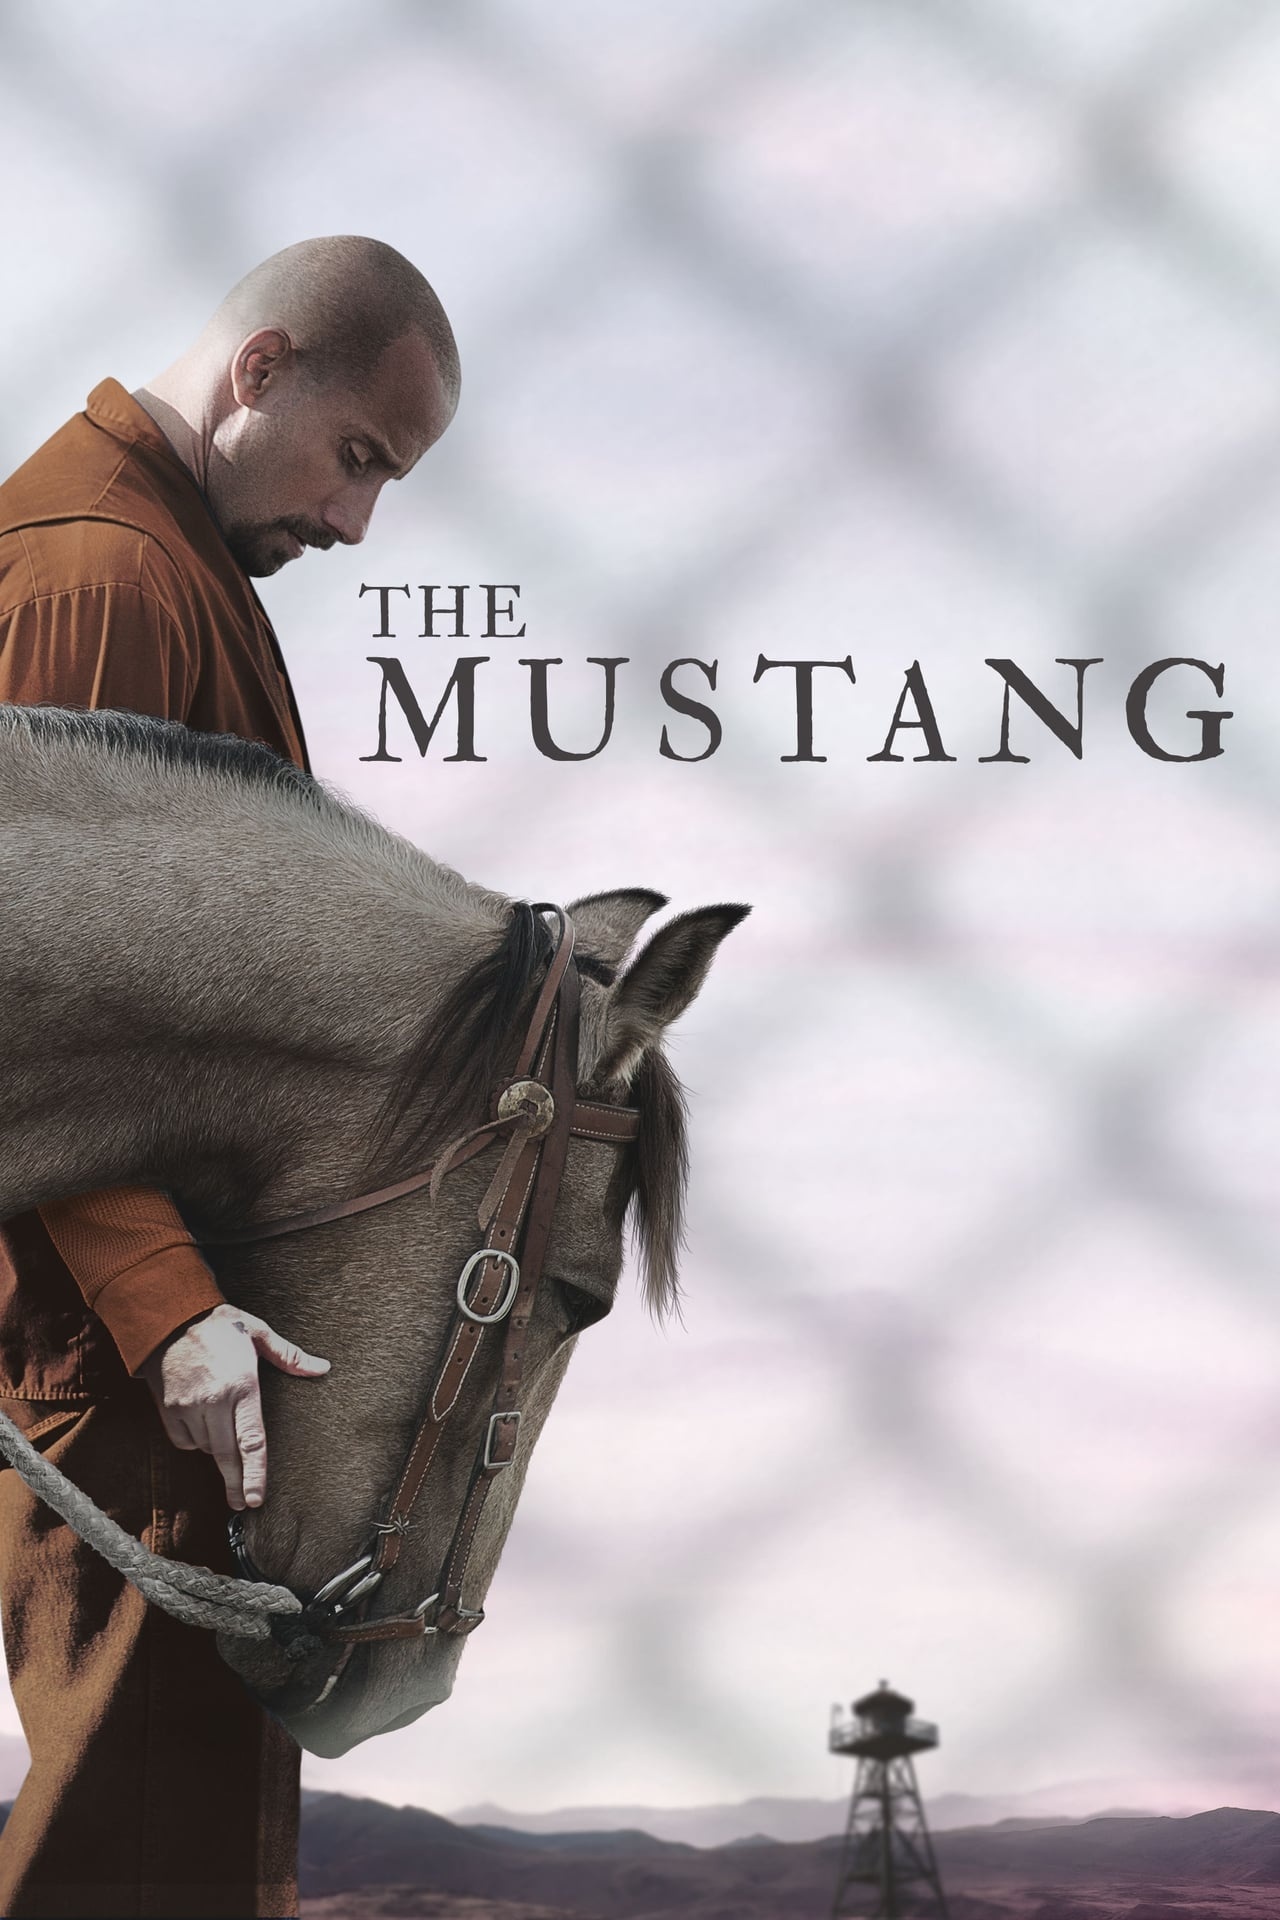 The Mustang image